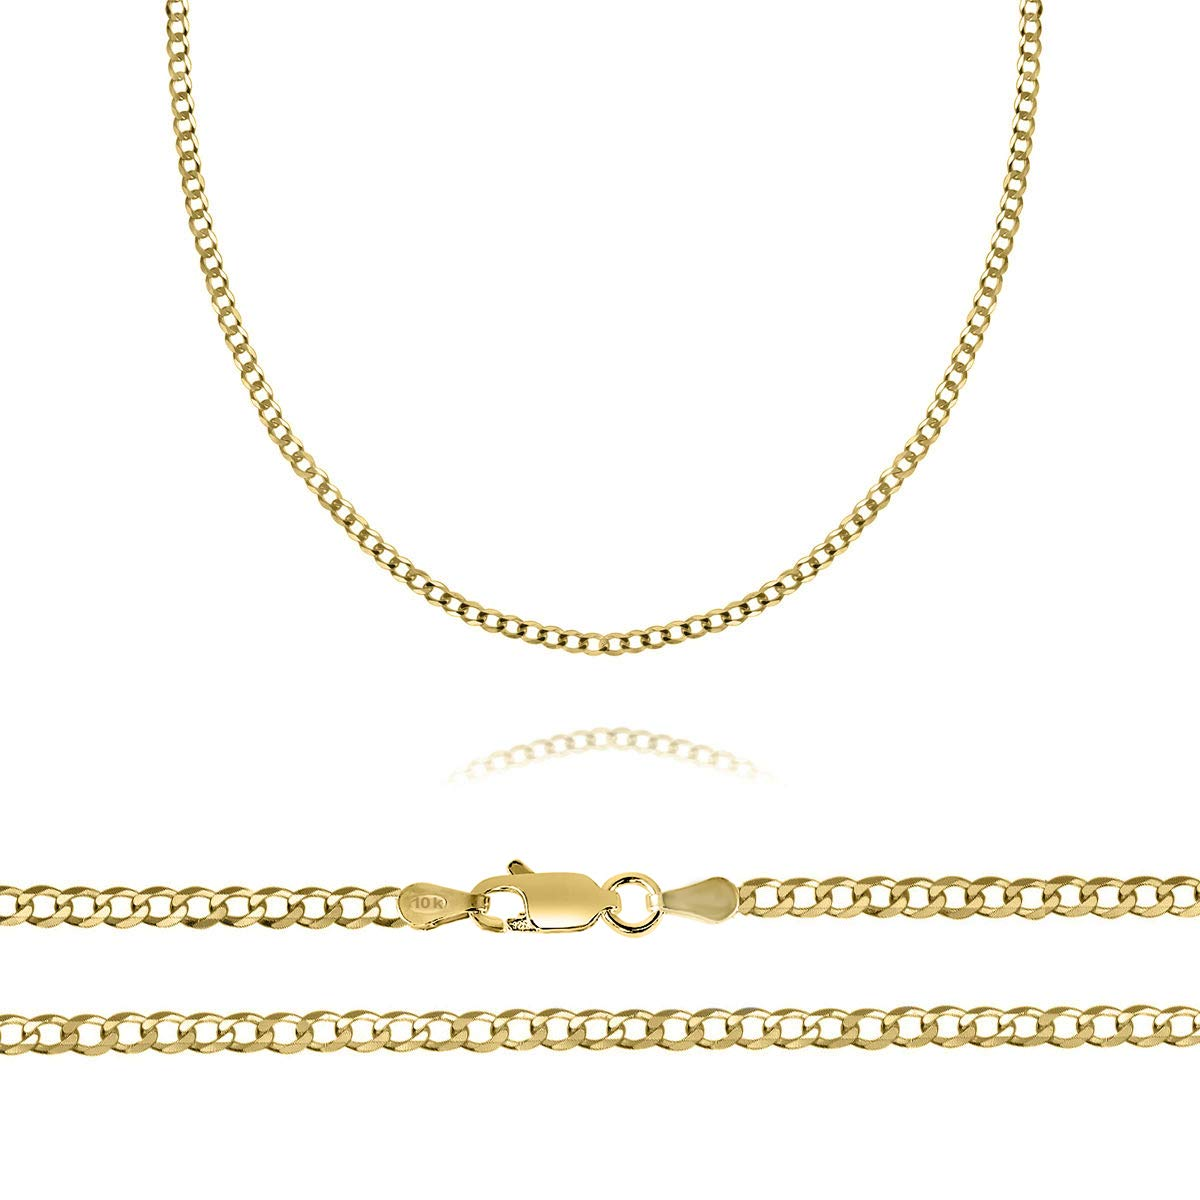 Orostar 10K Yellow Gold 2mm Curb Chain Necklace, 16'' - 30'' (20)